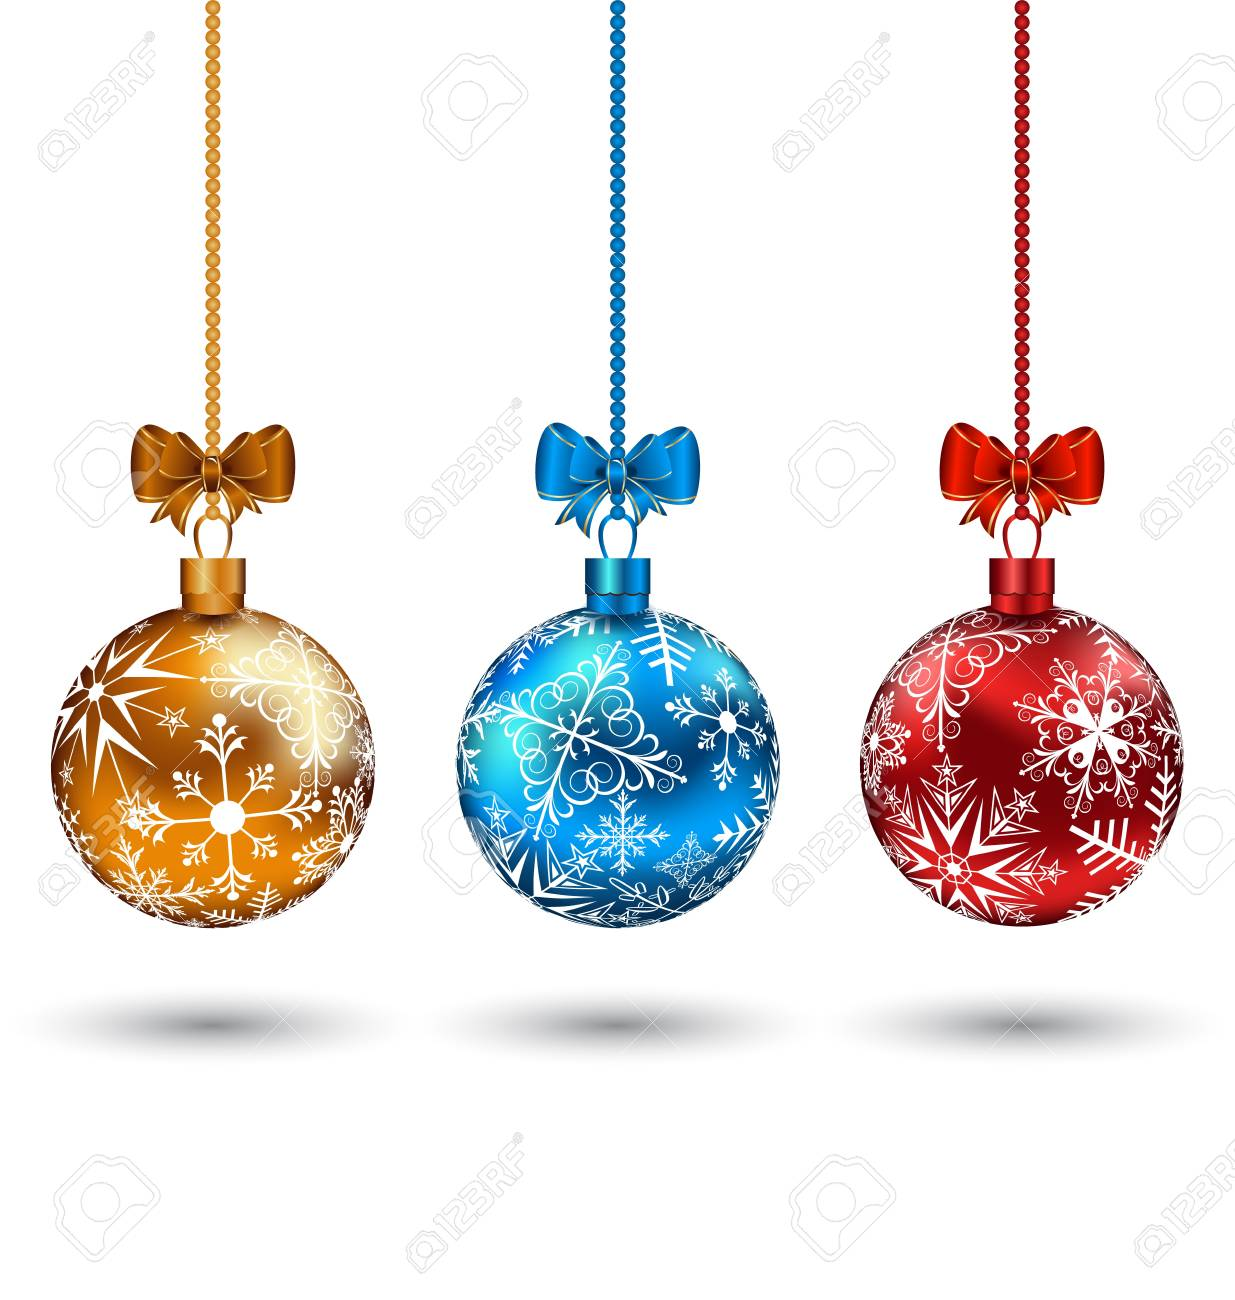 Illustration Christmas multicolor balls with bows isolated on white background Stock Photo - 15845865